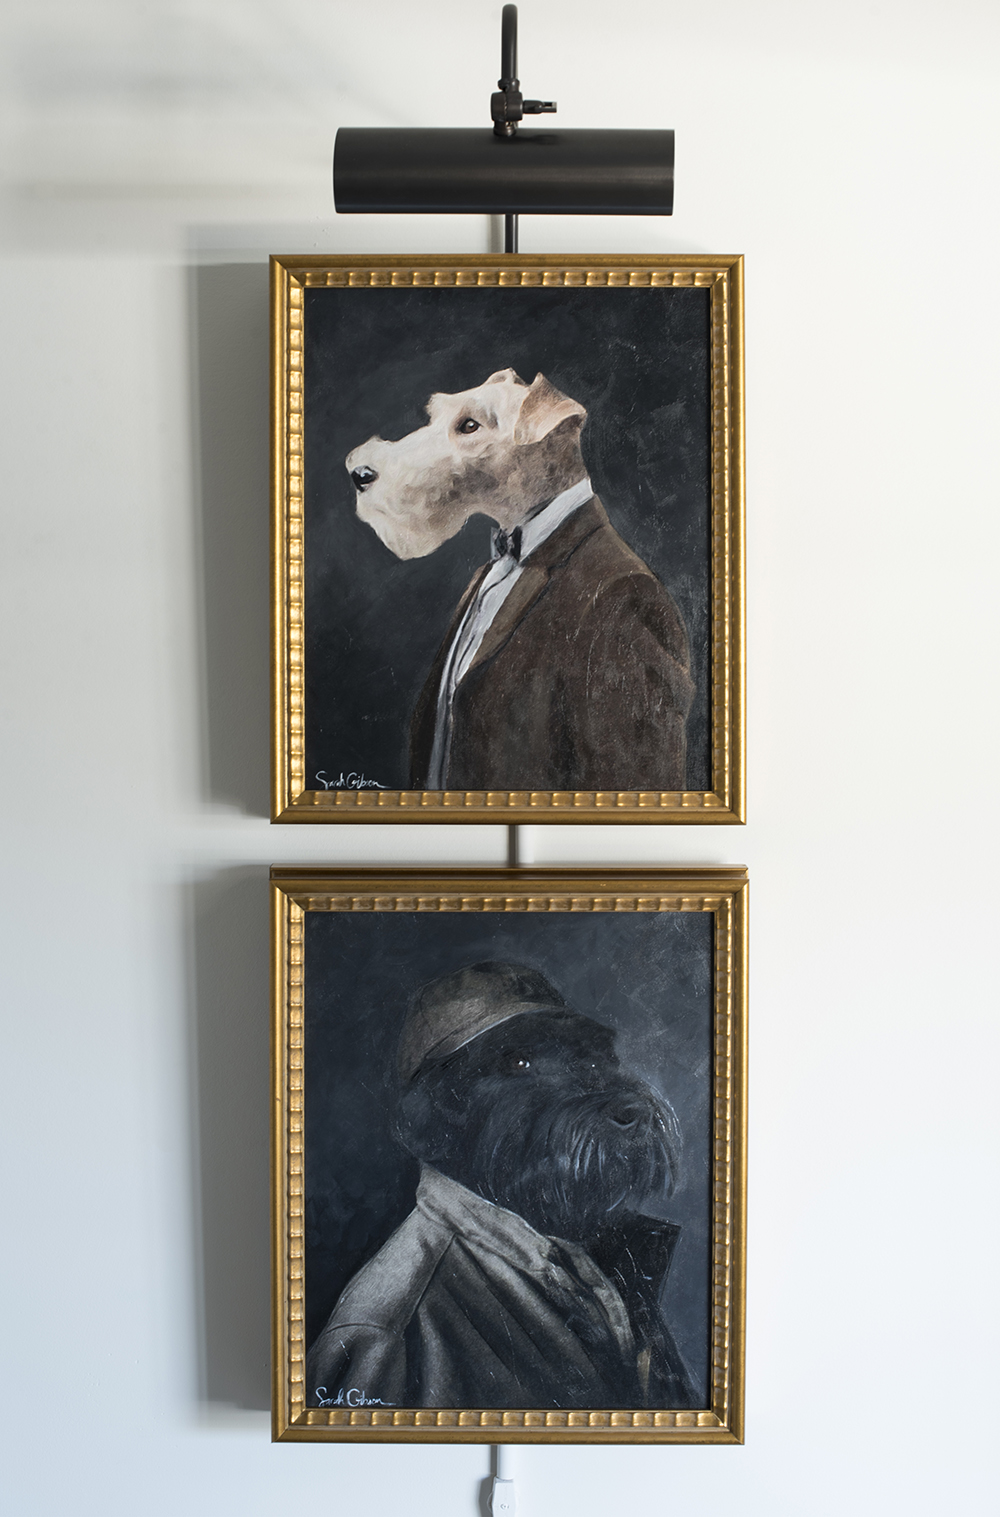 Best of Etsy : Vintage Dog Portraits - roomfortuesday.com